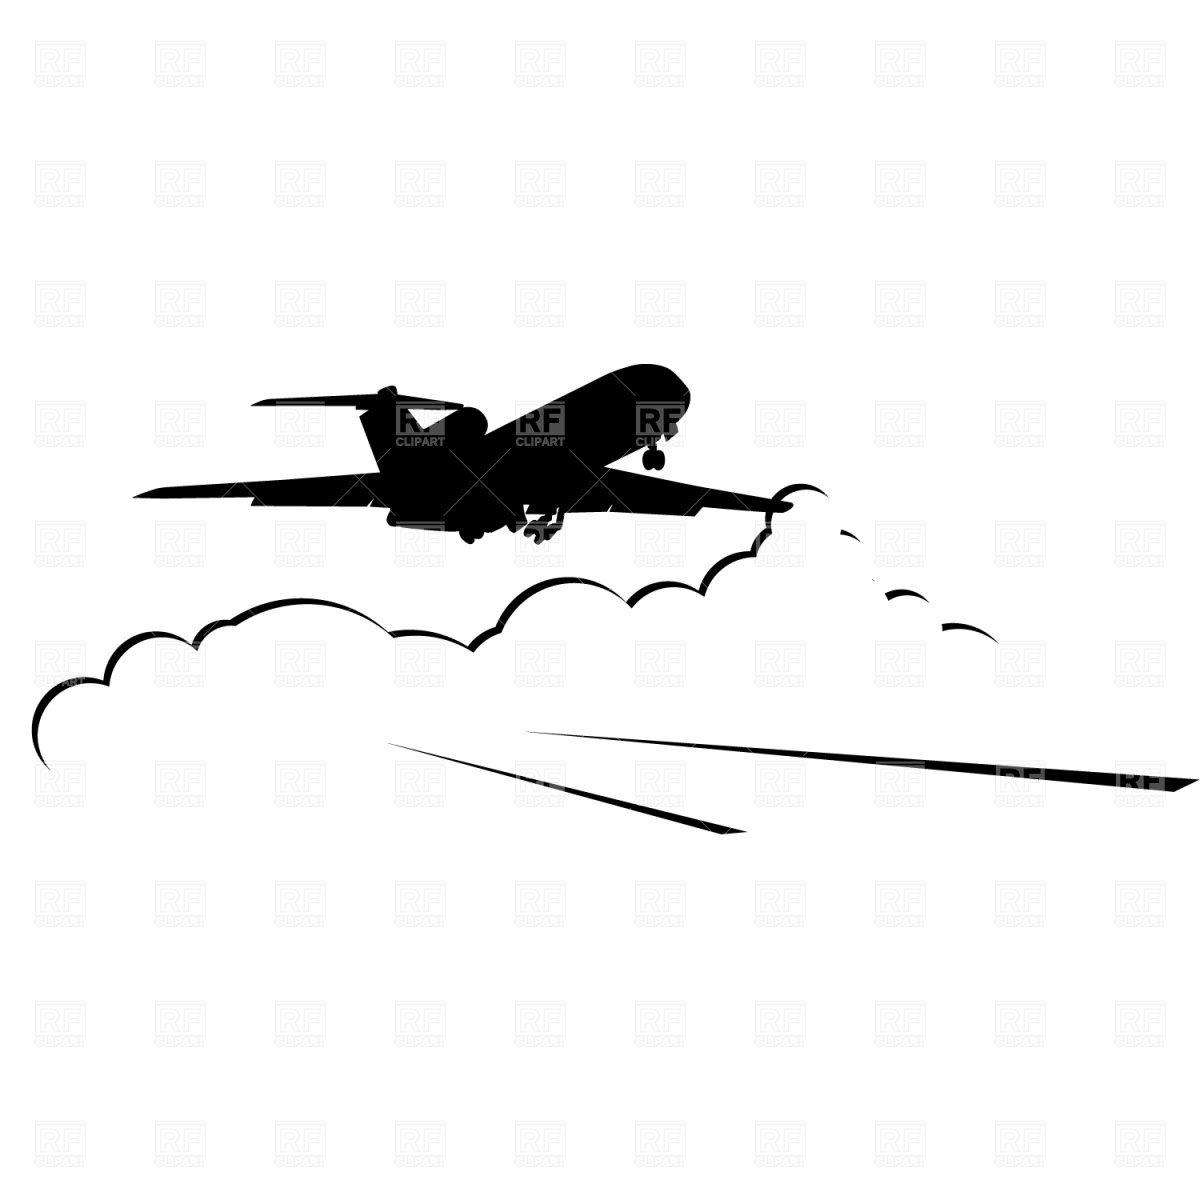 Clipart Catalog Silhouettes Outlines Jet Airplane Landing Download